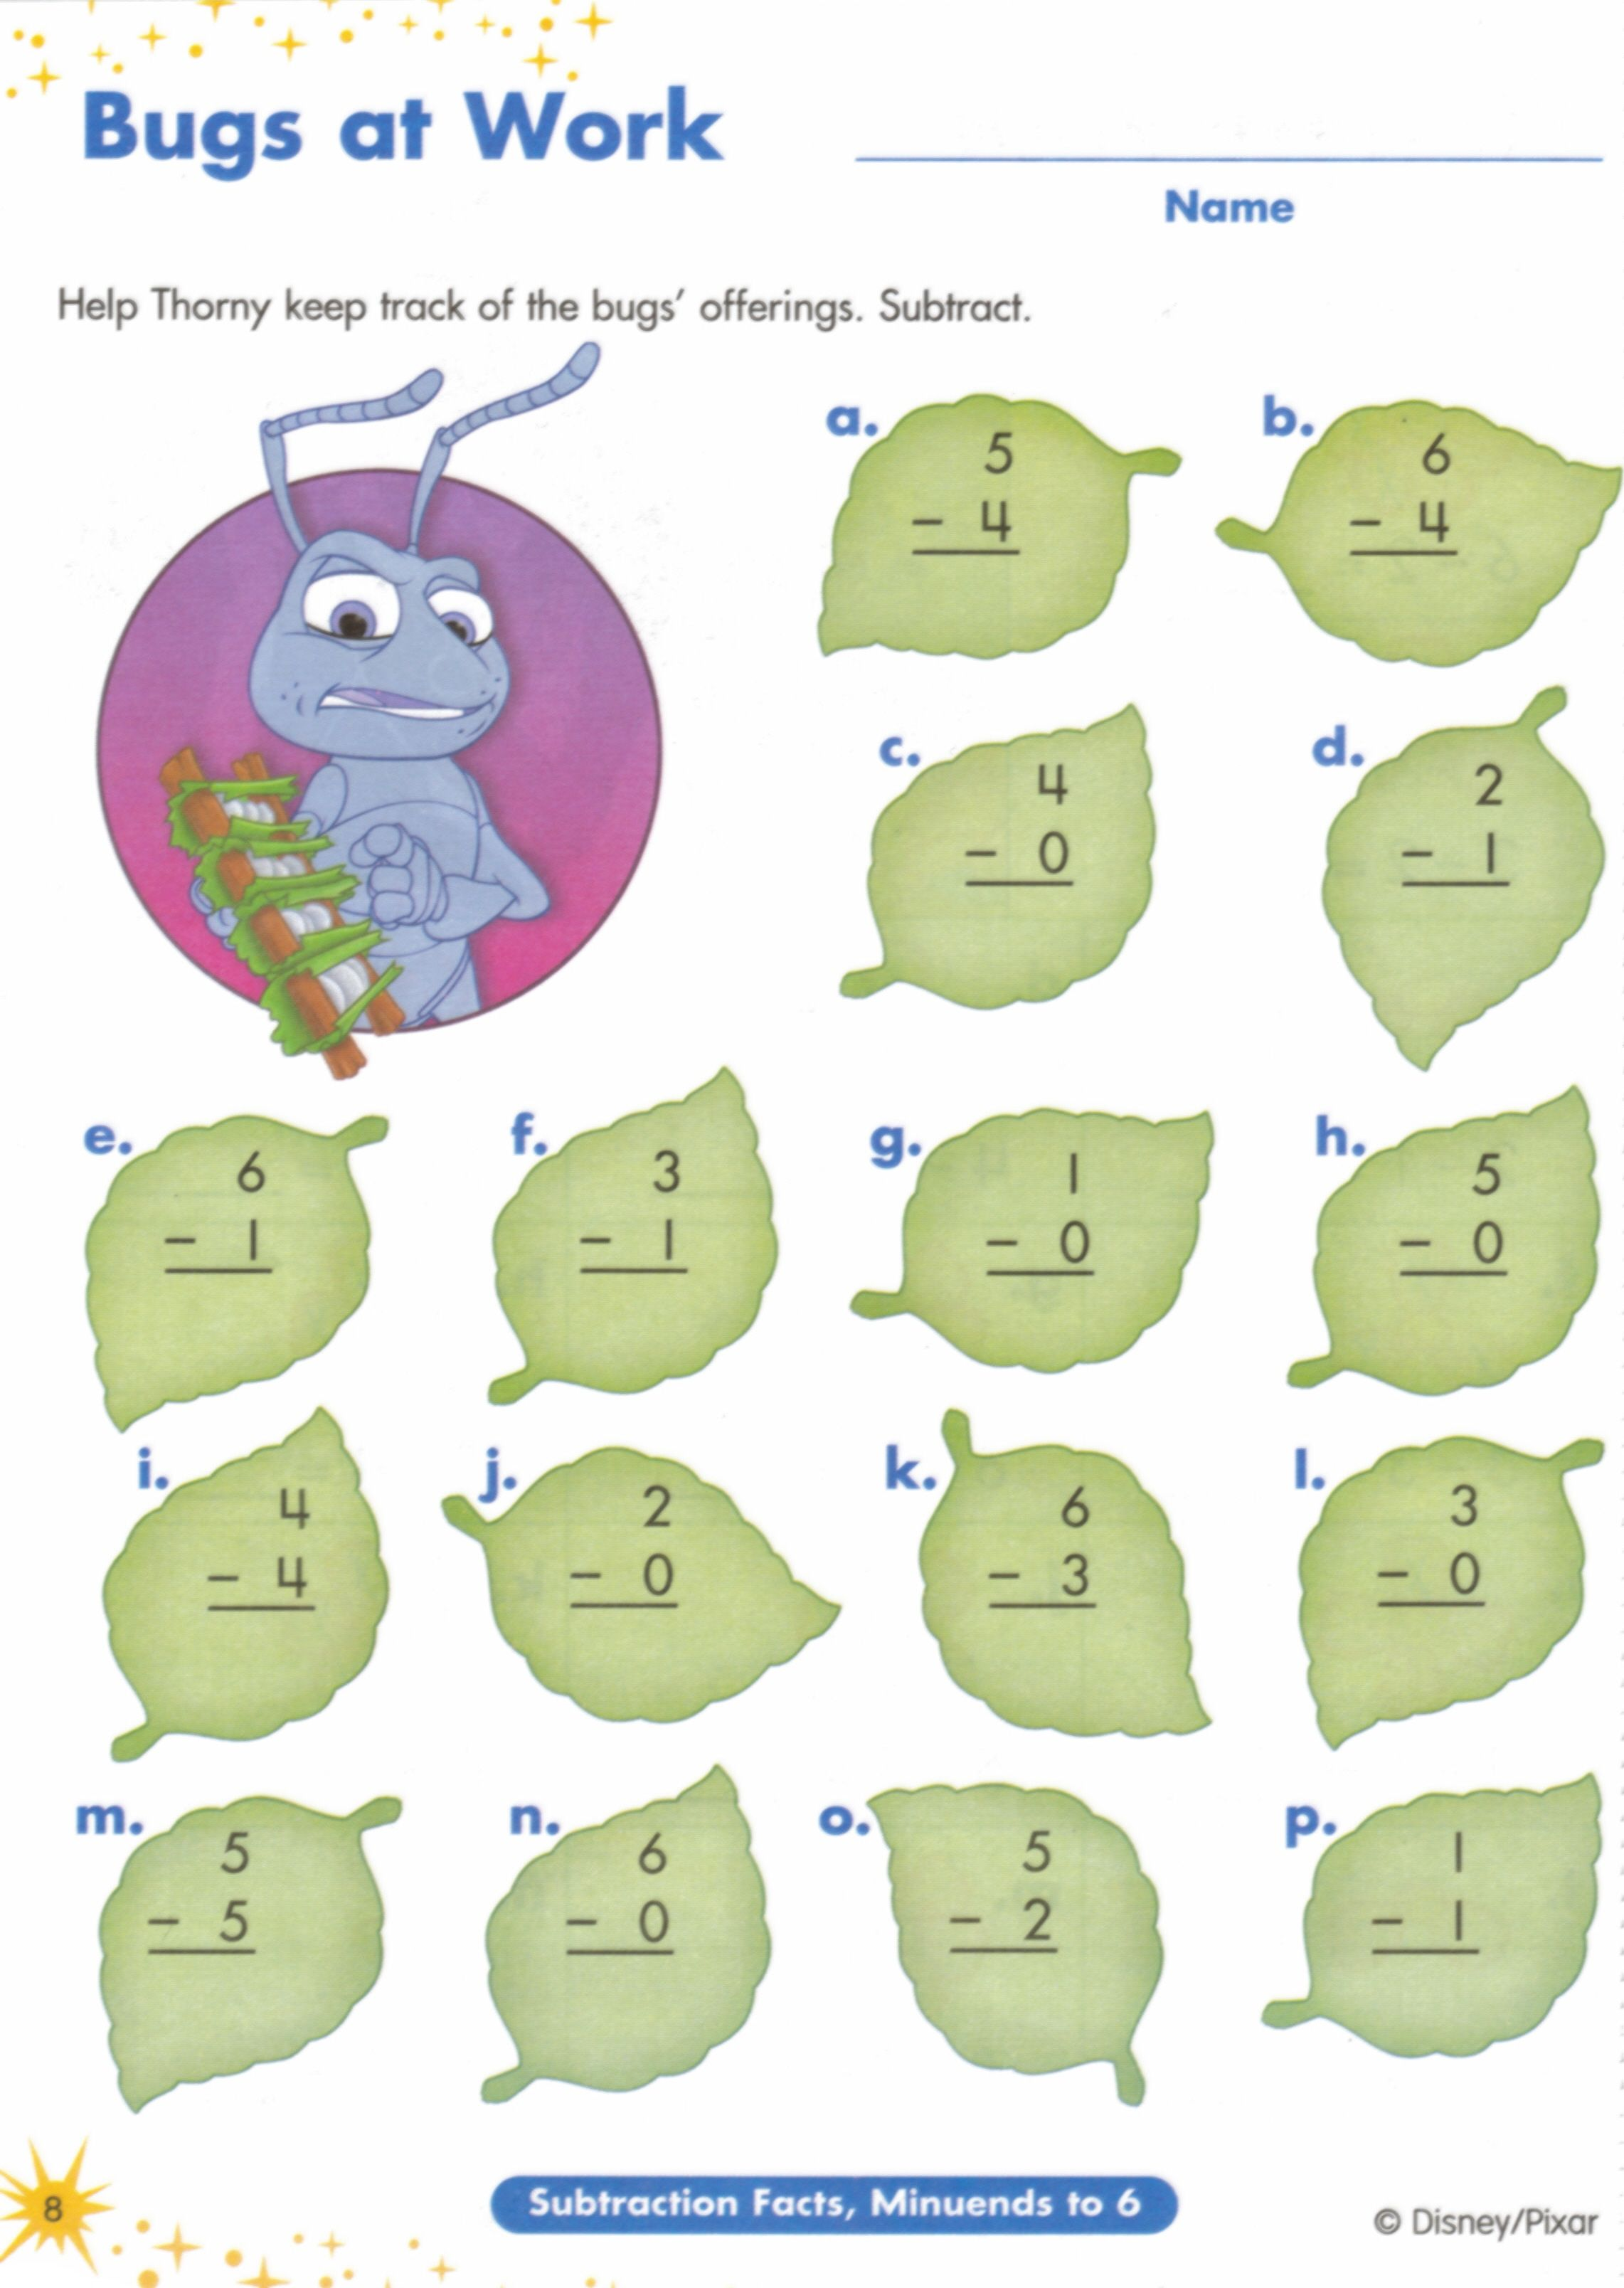 Proatmealus  Wonderful  Images About Worksheets On Pinterest  Fun Facts For Kids  With Outstanding  Images About Worksheets On Pinterest  Fun Facts For Kids Earth Day Worksheets And Jungles With Easy On The Eye Family Budgeting Worksheet Also Perimeter Word Problem Worksheets In Addition Water Safety For Kids Worksheets And Converting Length Worksheet As Well As Skip Counting By Fives Worksheets Additionally Free Printable Times Tables Worksheets From Pinterestcom With Proatmealus  Outstanding  Images About Worksheets On Pinterest  Fun Facts For Kids  With Easy On The Eye  Images About Worksheets On Pinterest  Fun Facts For Kids Earth Day Worksheets And Jungles And Wonderful Family Budgeting Worksheet Also Perimeter Word Problem Worksheets In Addition Water Safety For Kids Worksheets From Pinterestcom